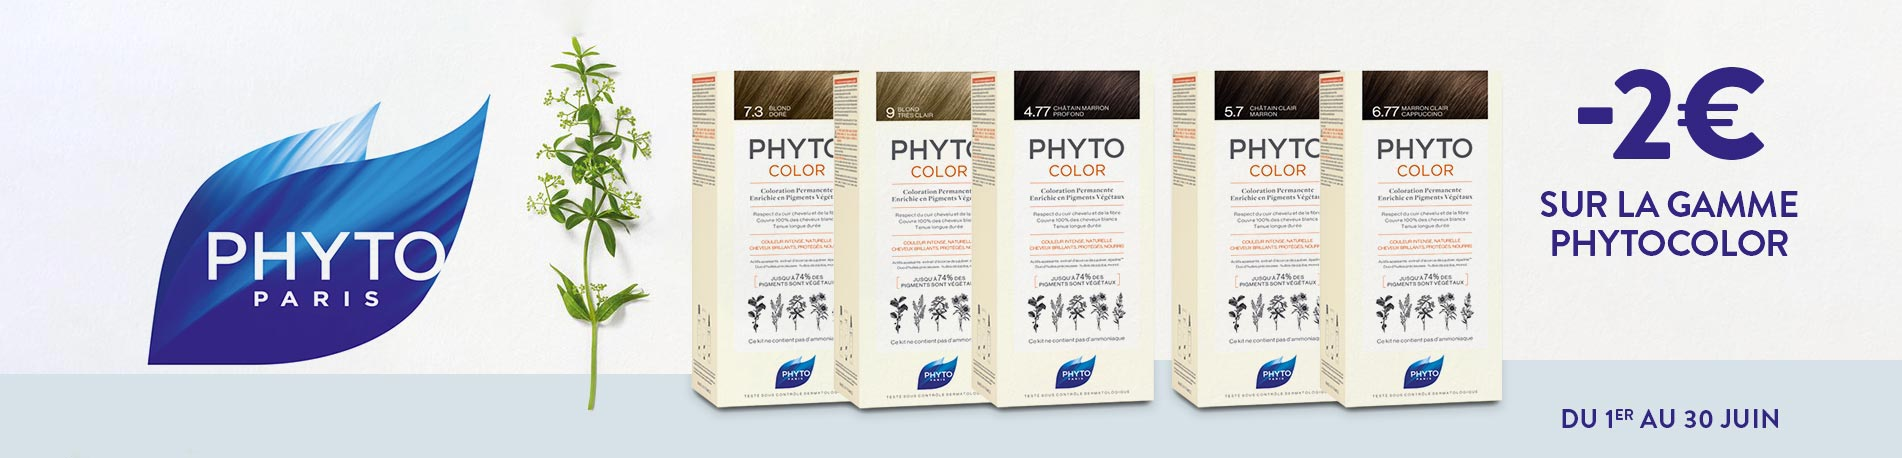 Promotion Phytocolor